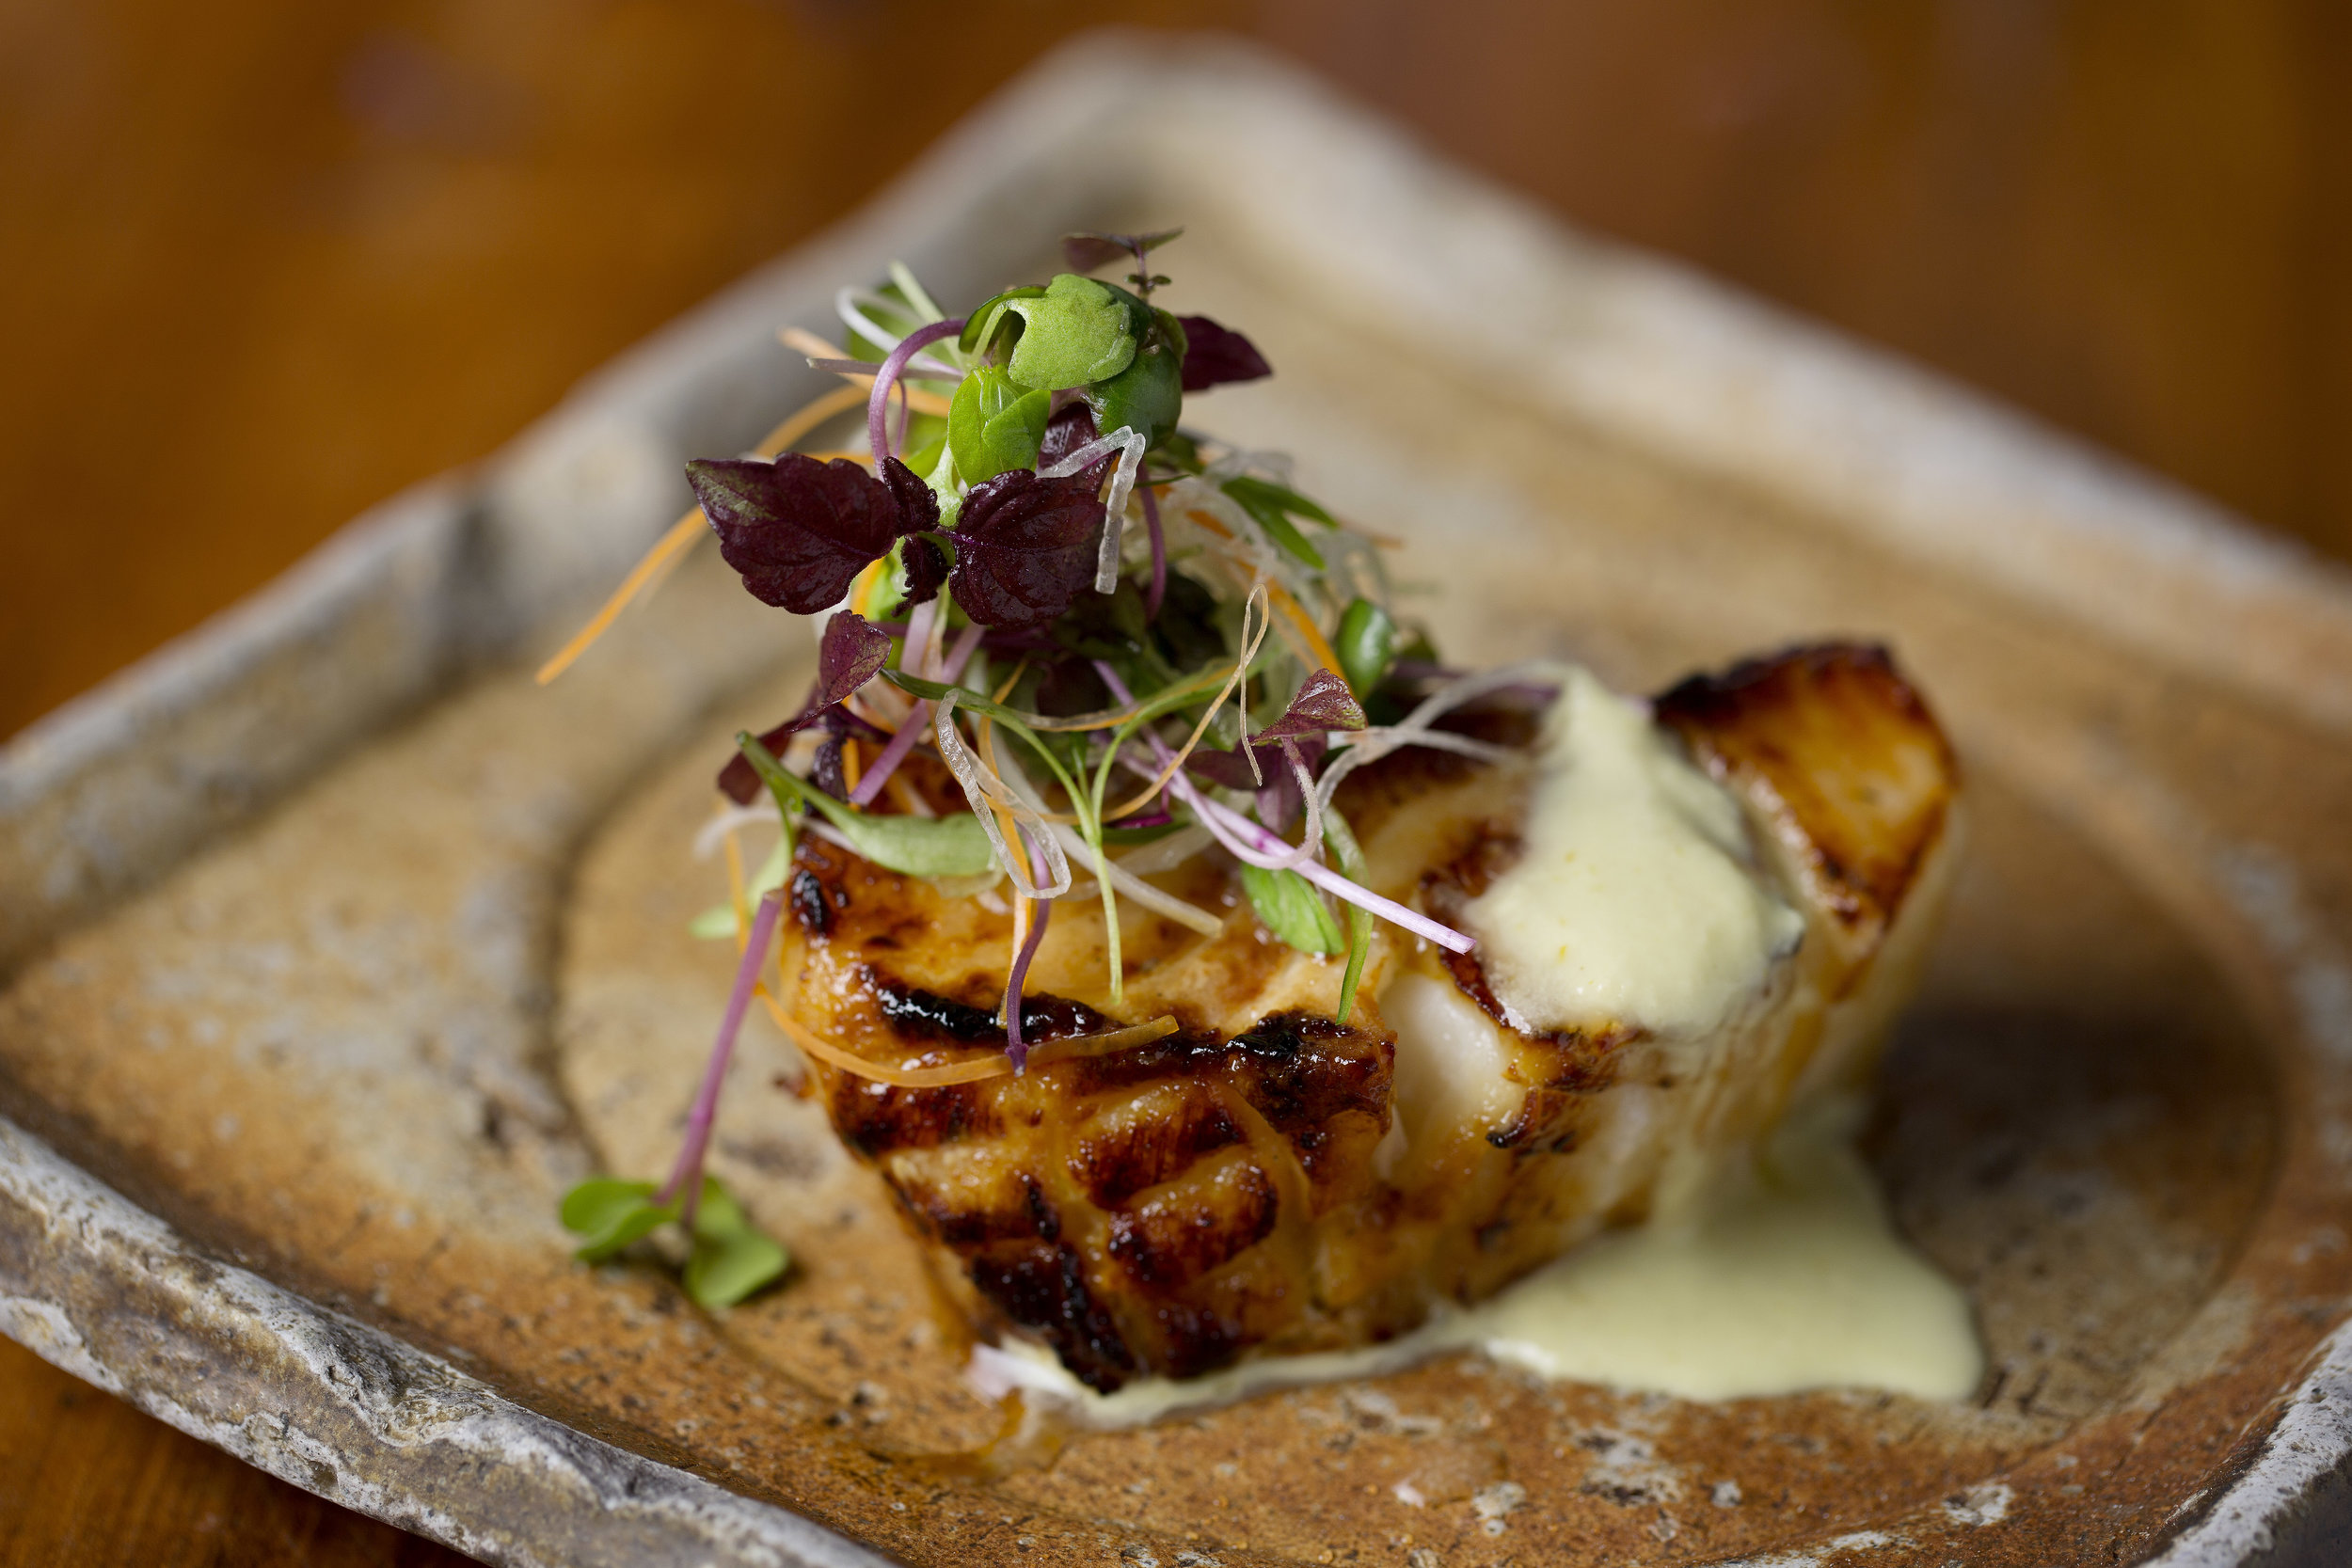 grilled chilean seabass with green chilli, ginger dressing - ainame no koumi yaki to kousou.jpg